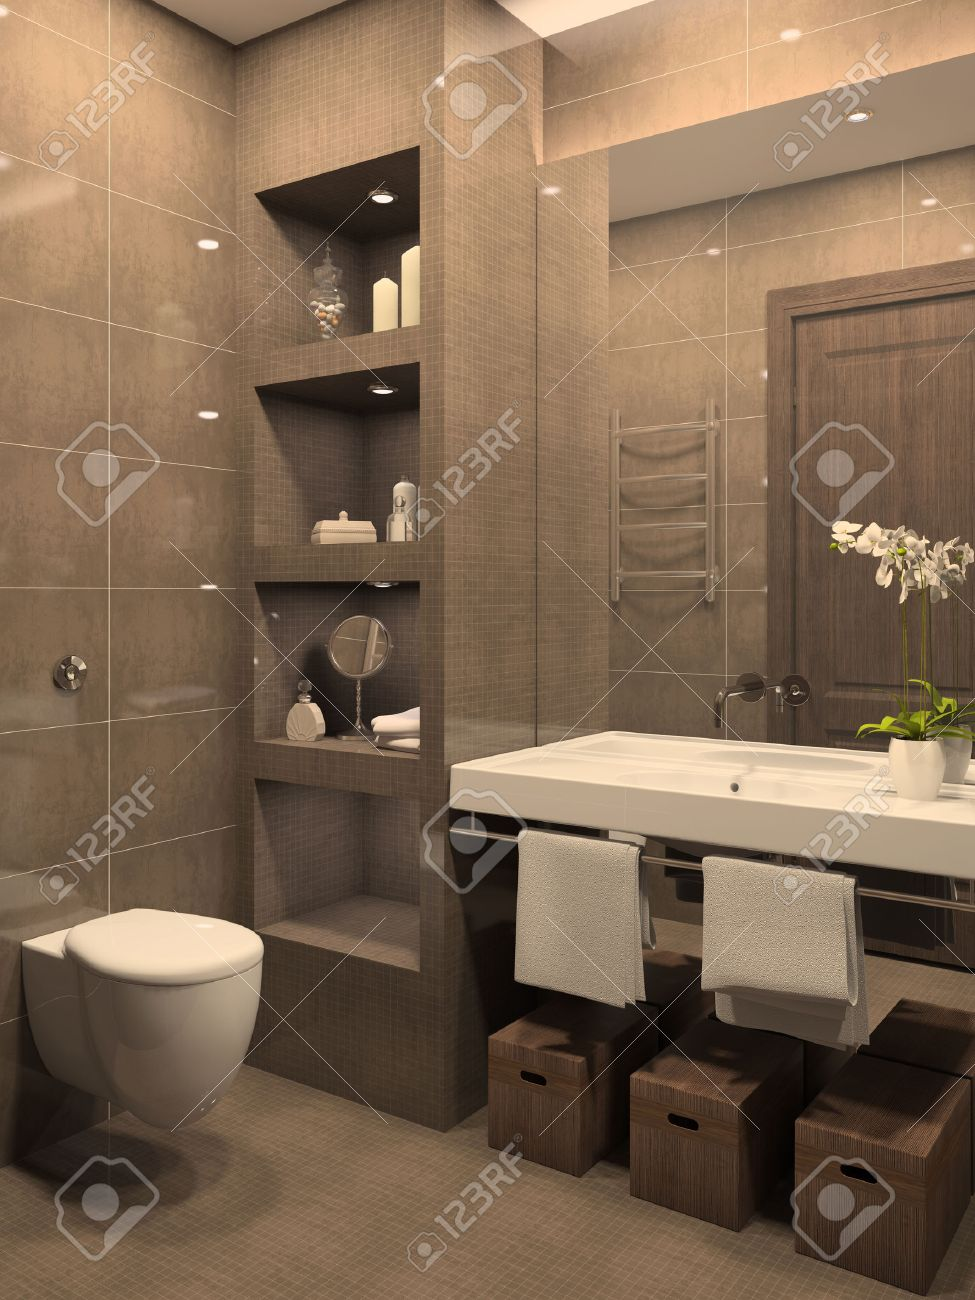 3d bathroom images stock pictures royalty free 3d bathroom 3d bathroom modern bathroom interior 3d render